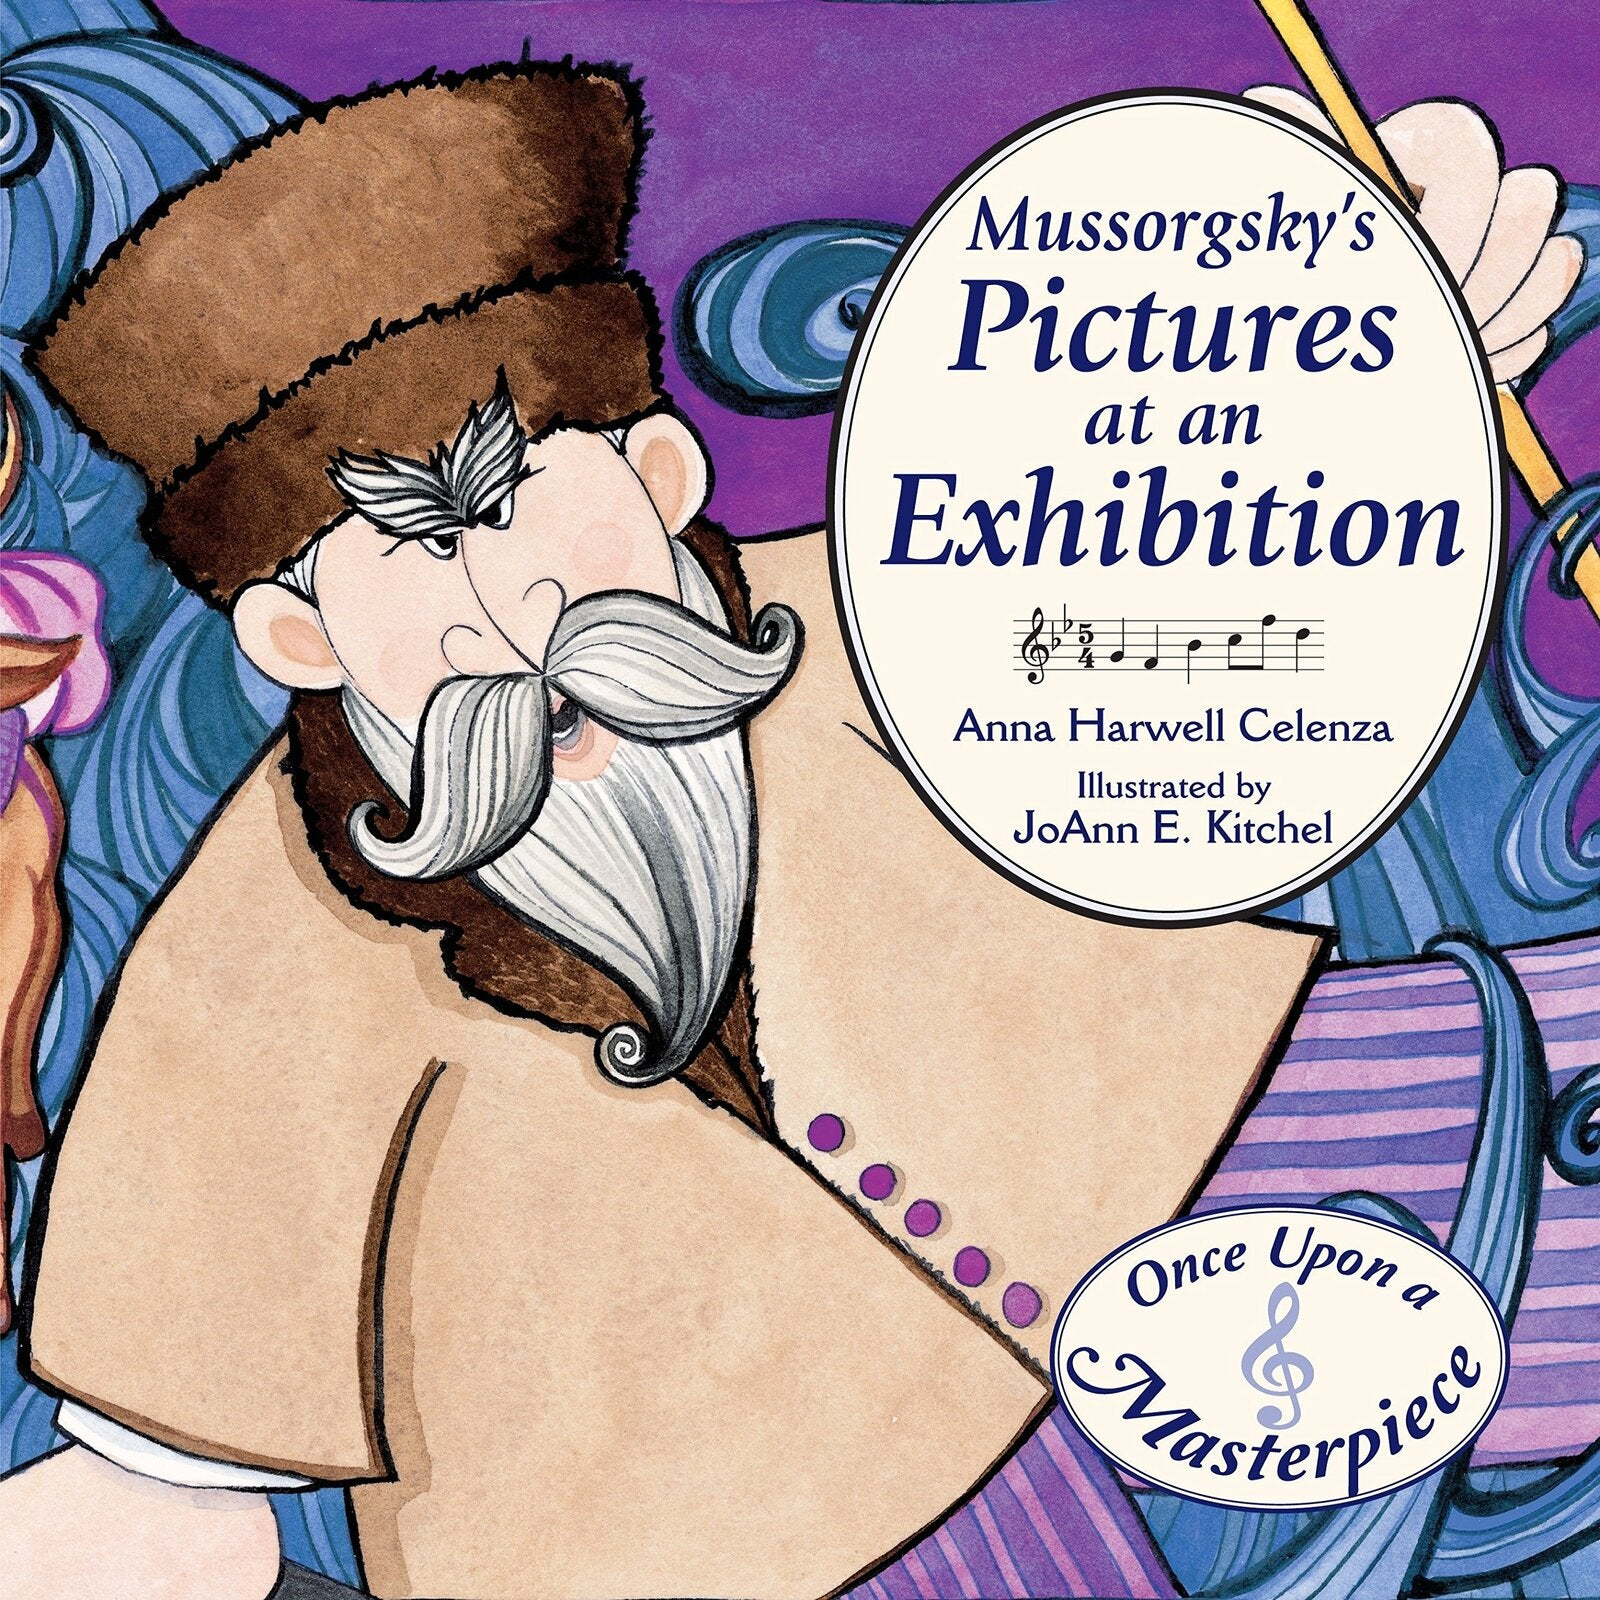 Mussorgsky's Pictures at an Exhibition Hardcover Book